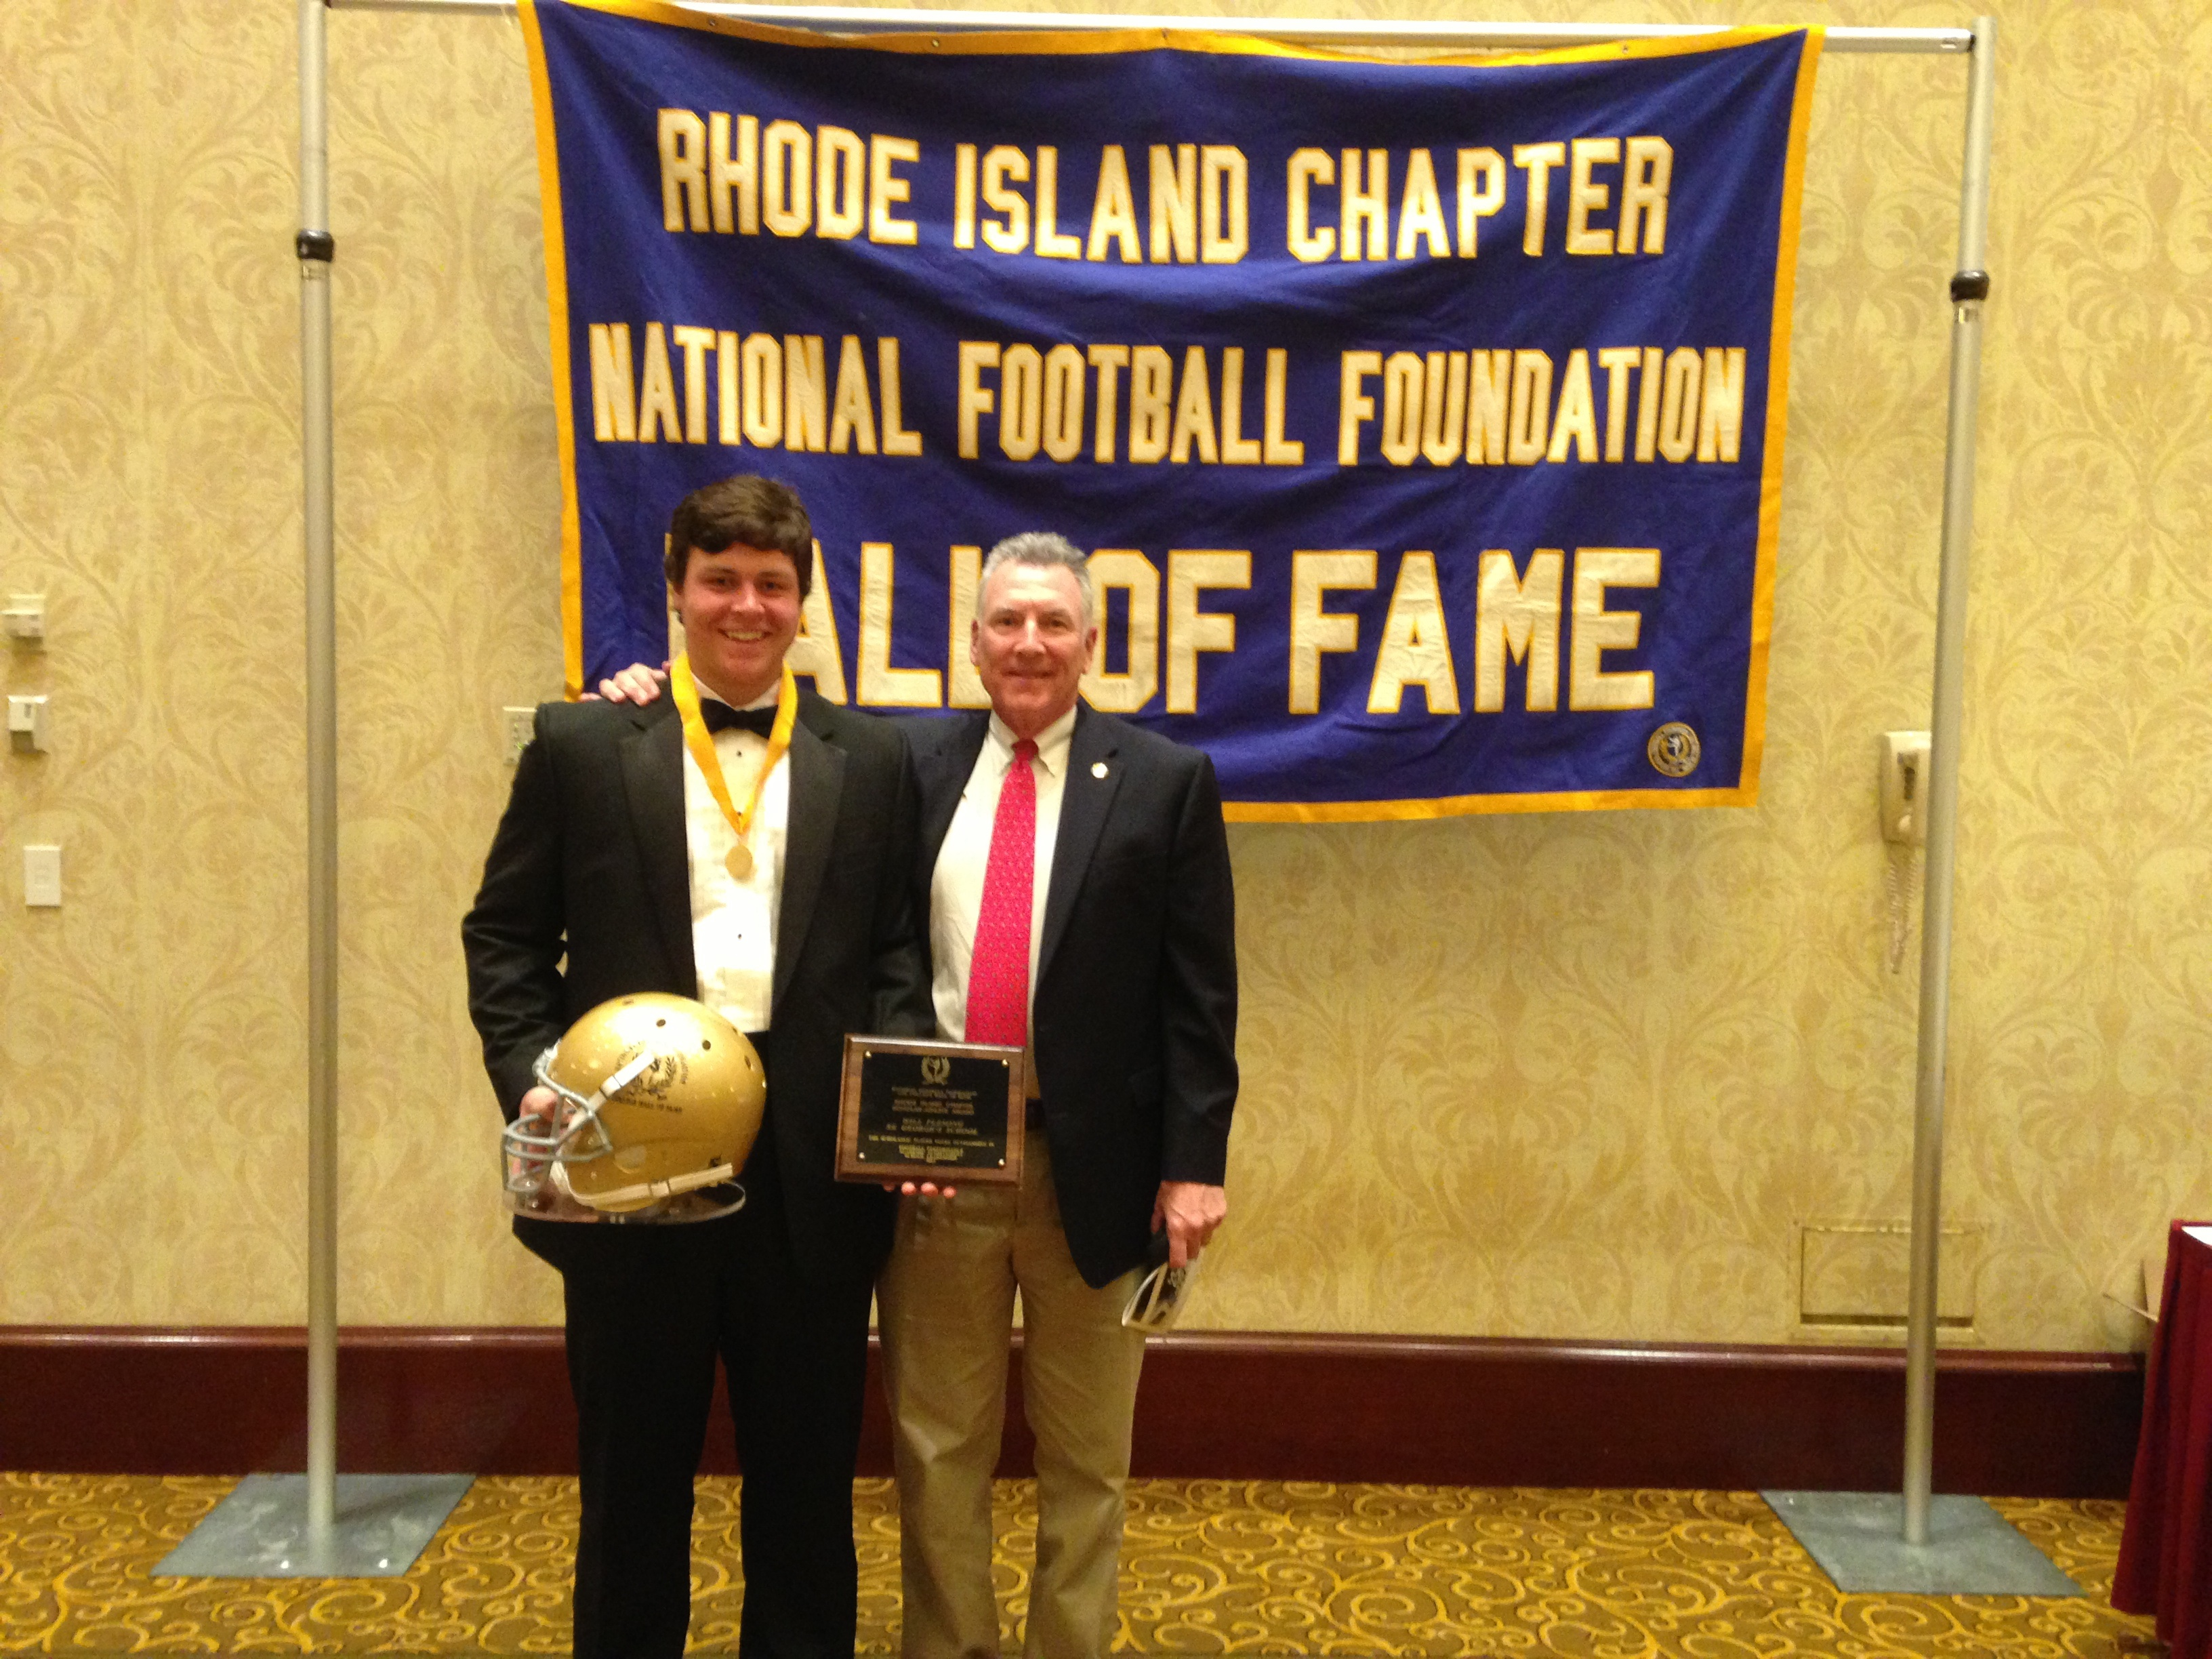 St. George's Fleming Honored at the RI Chapter of the National Football Foundation & College Hall of Fame's Golden Dozen Dinner